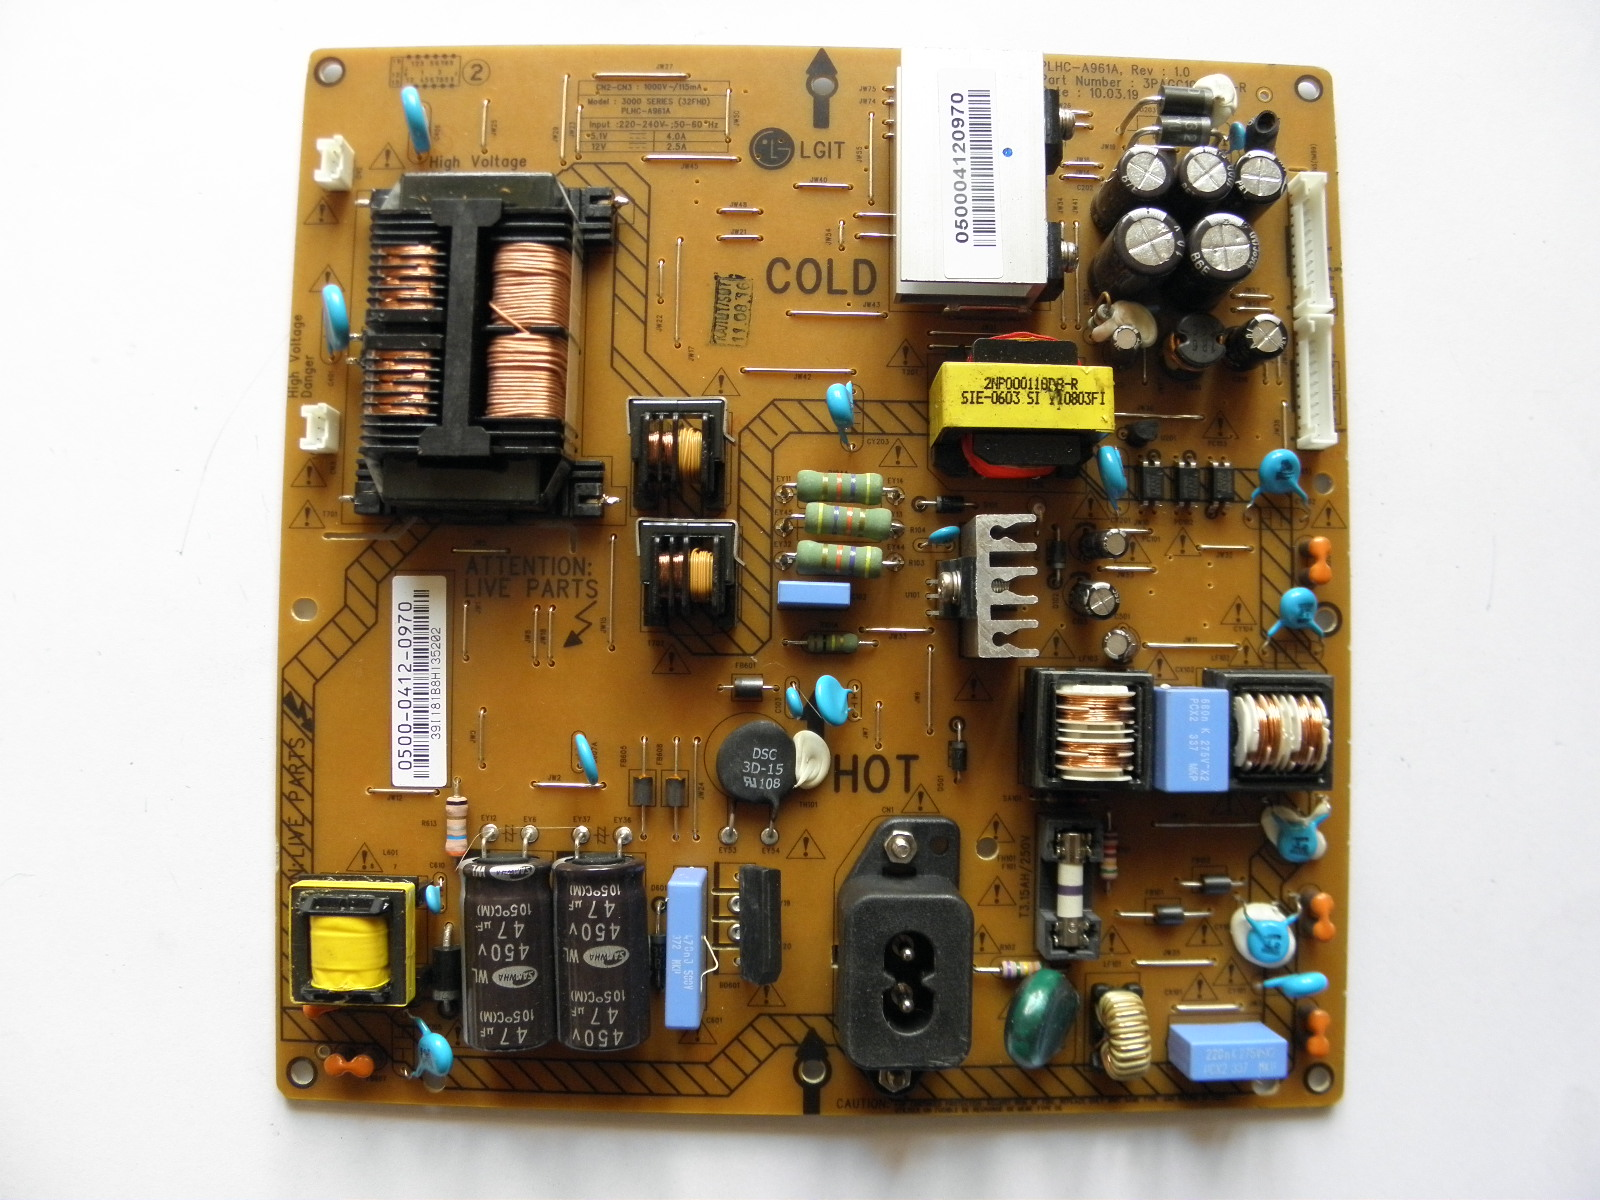 NEW 3PAGC10030B-R PLHC-A961B REV 1.1 TV BOARD MODULE